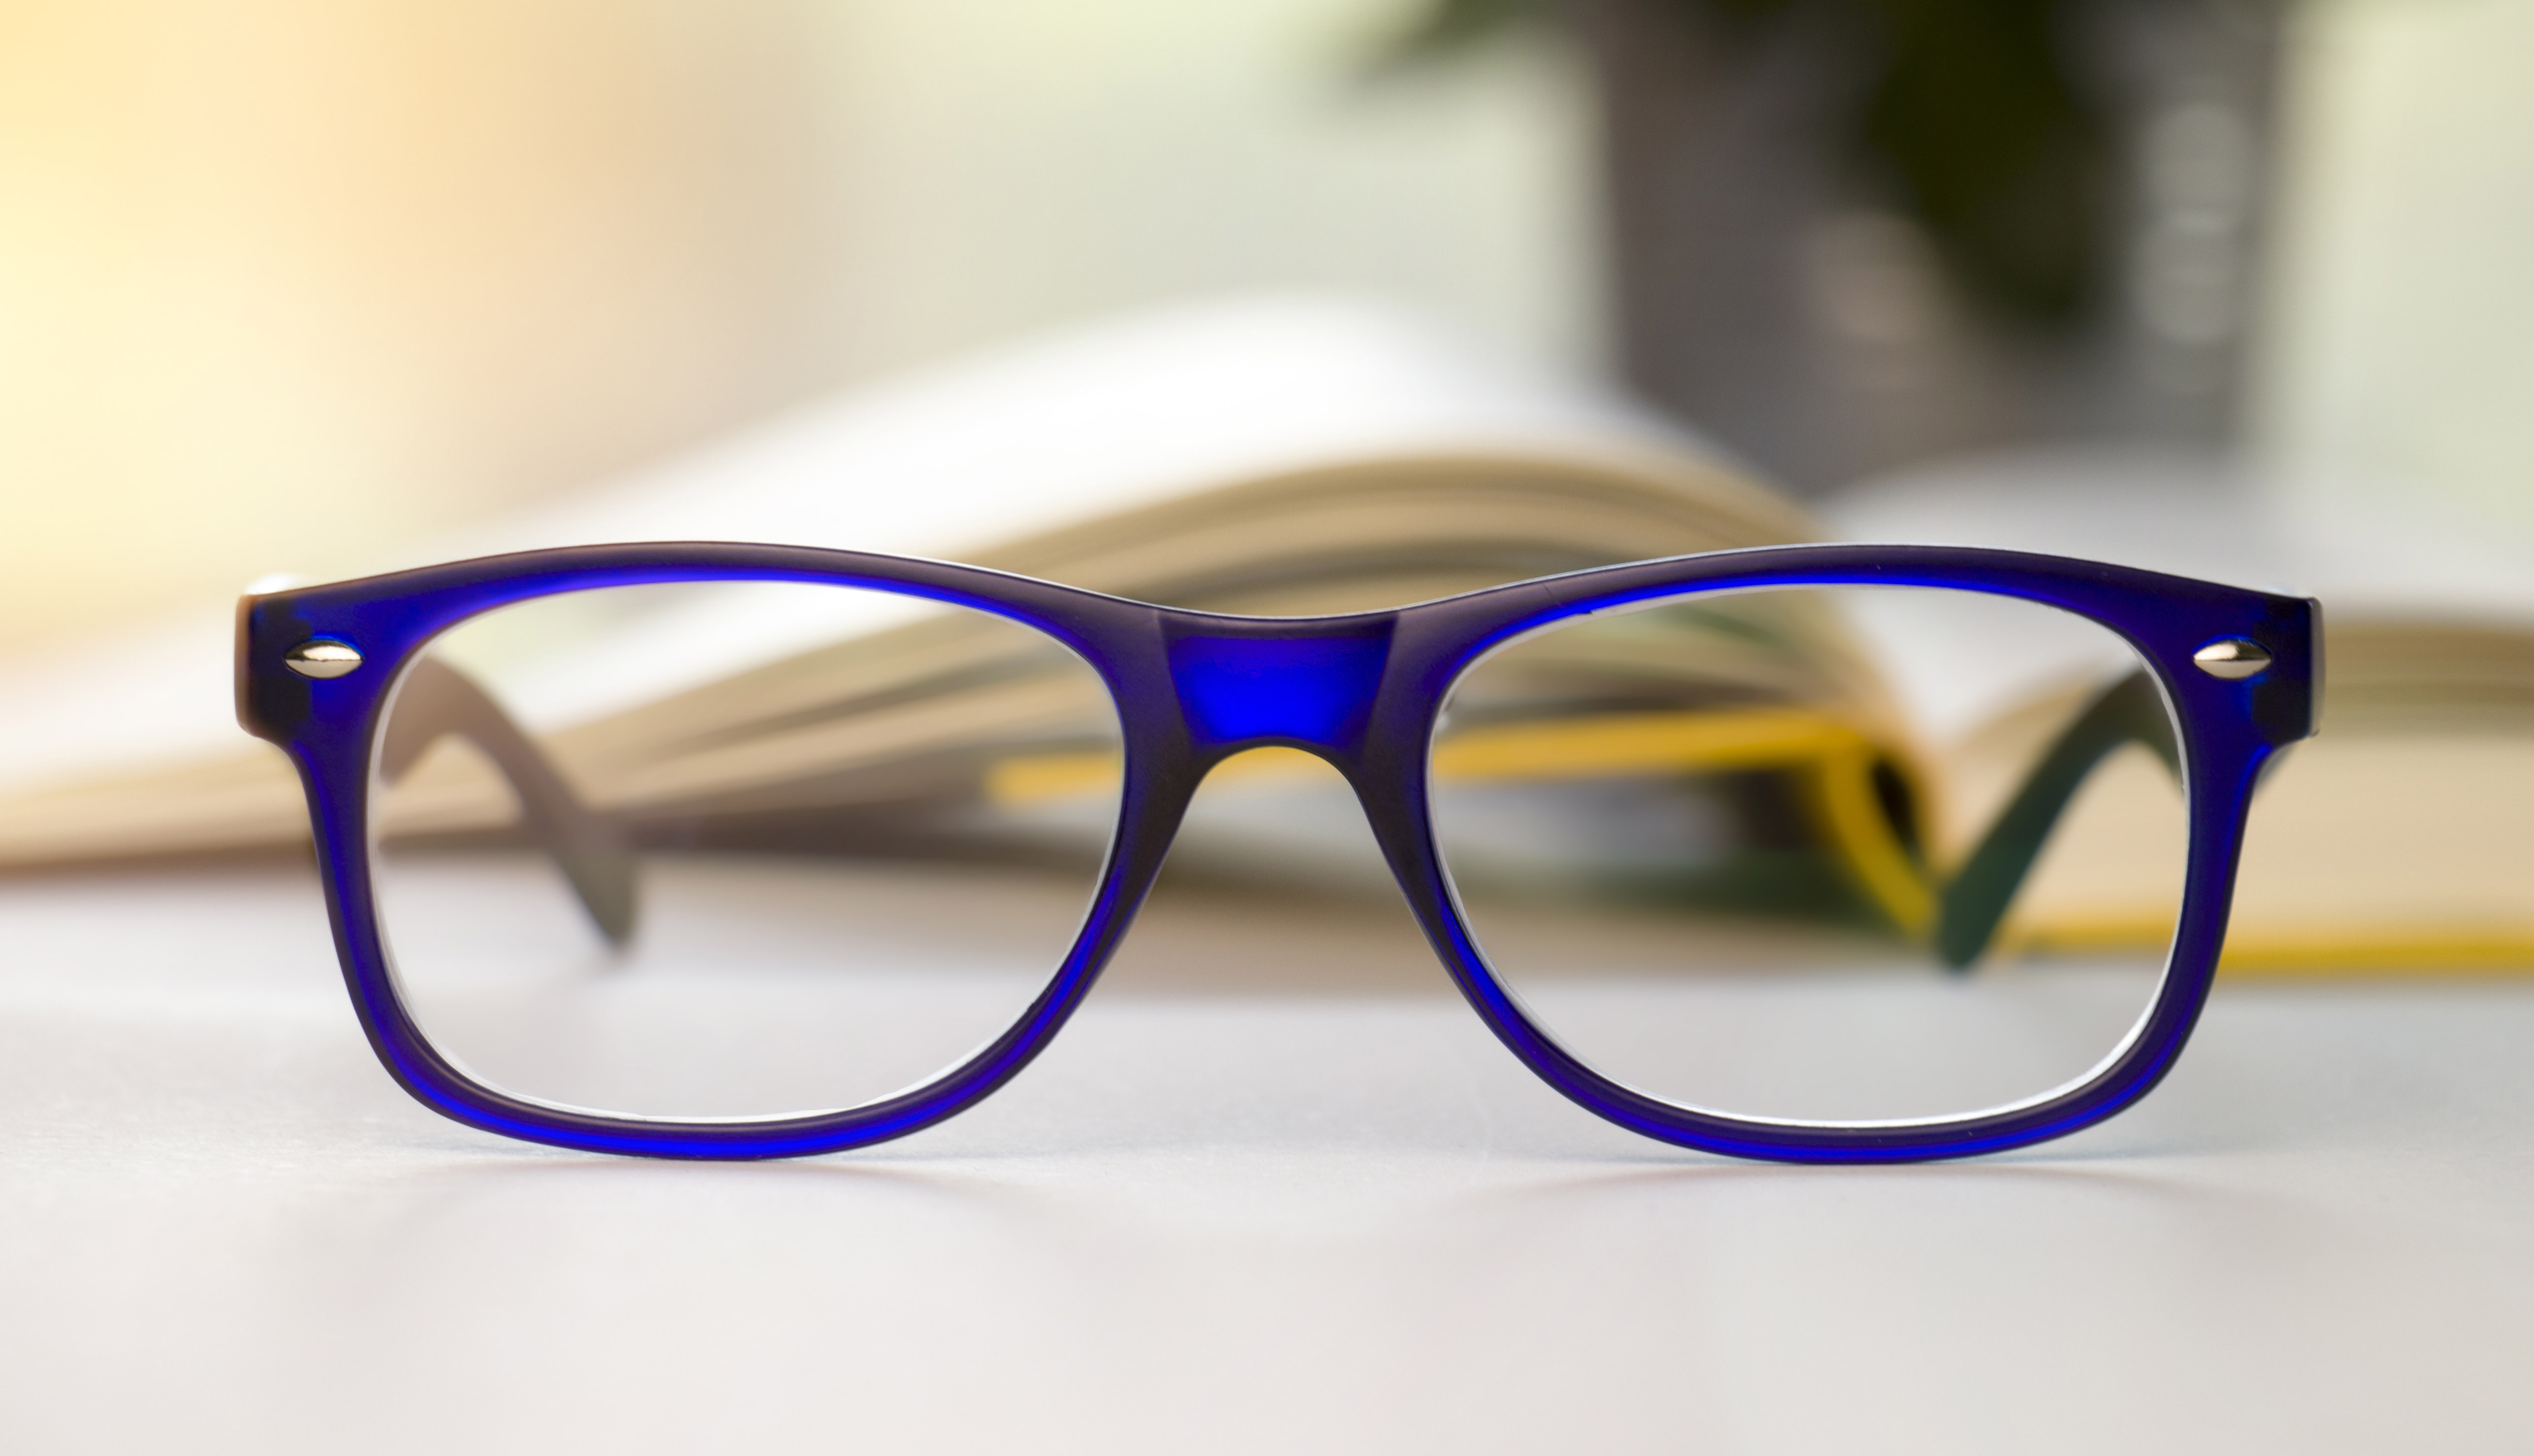 f73f6bcb136 Stylish blue glasses on a blur background. Getty Images. As reading ...